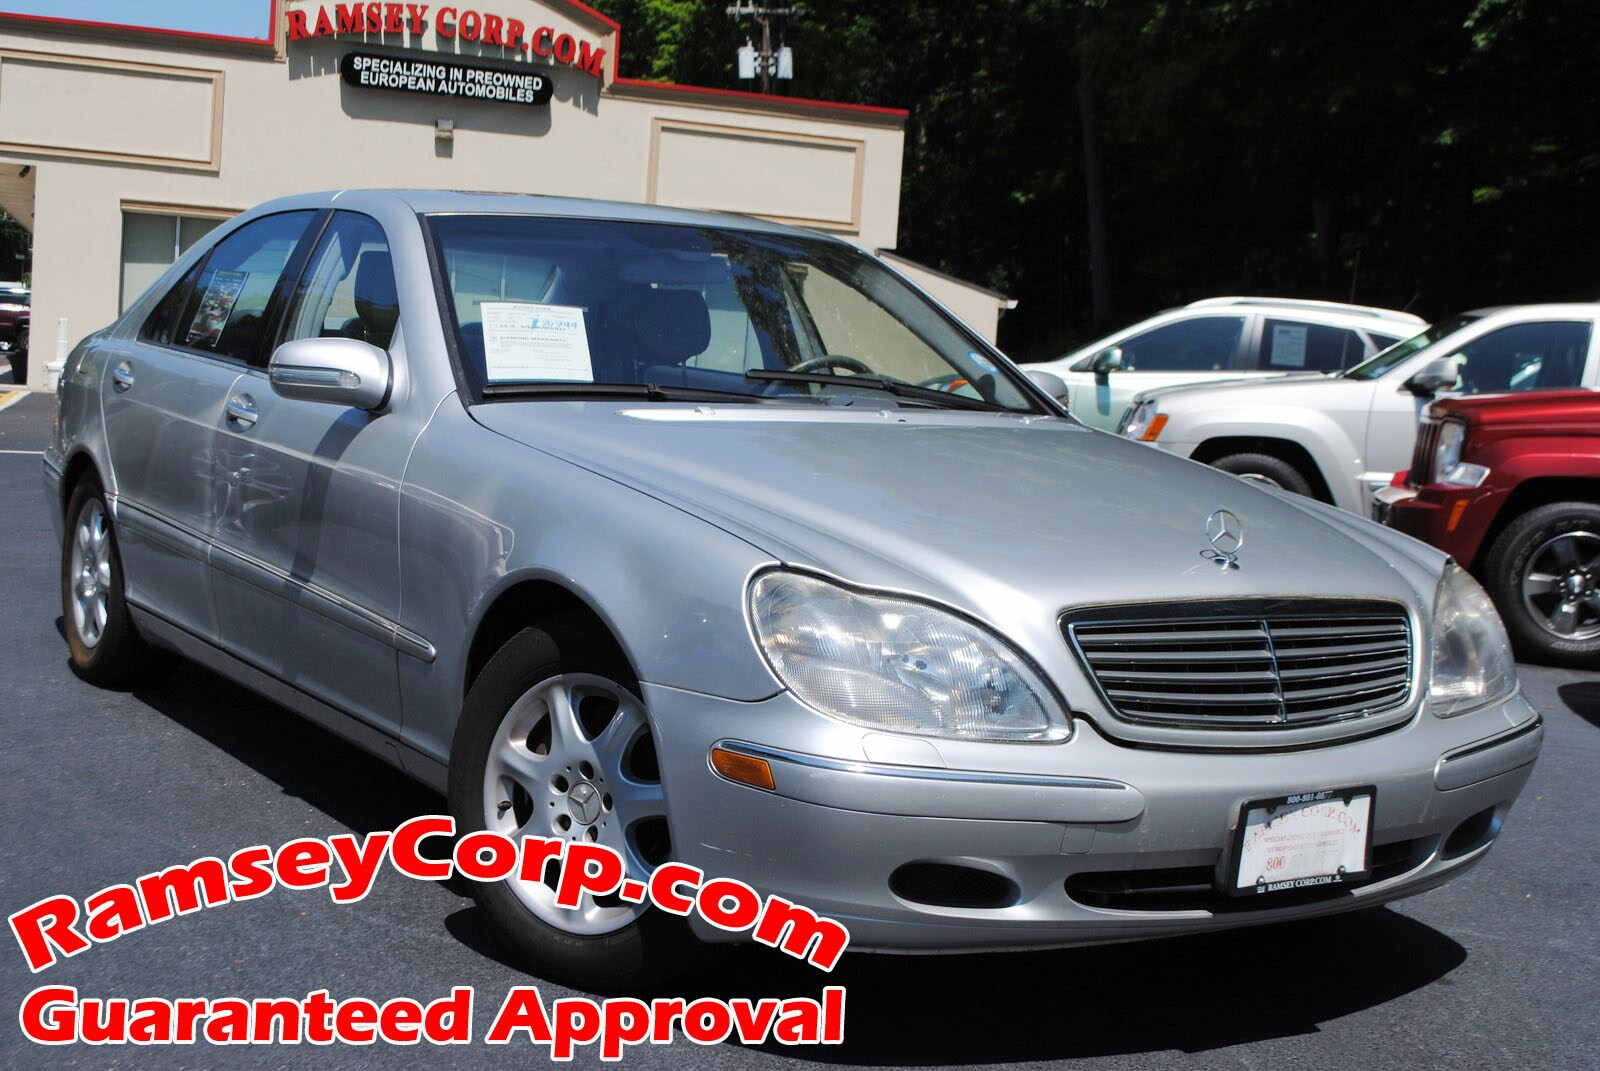 Used 2002 mercedes benz s class for sale west milford nj for 2002 mercedes benz s class s500